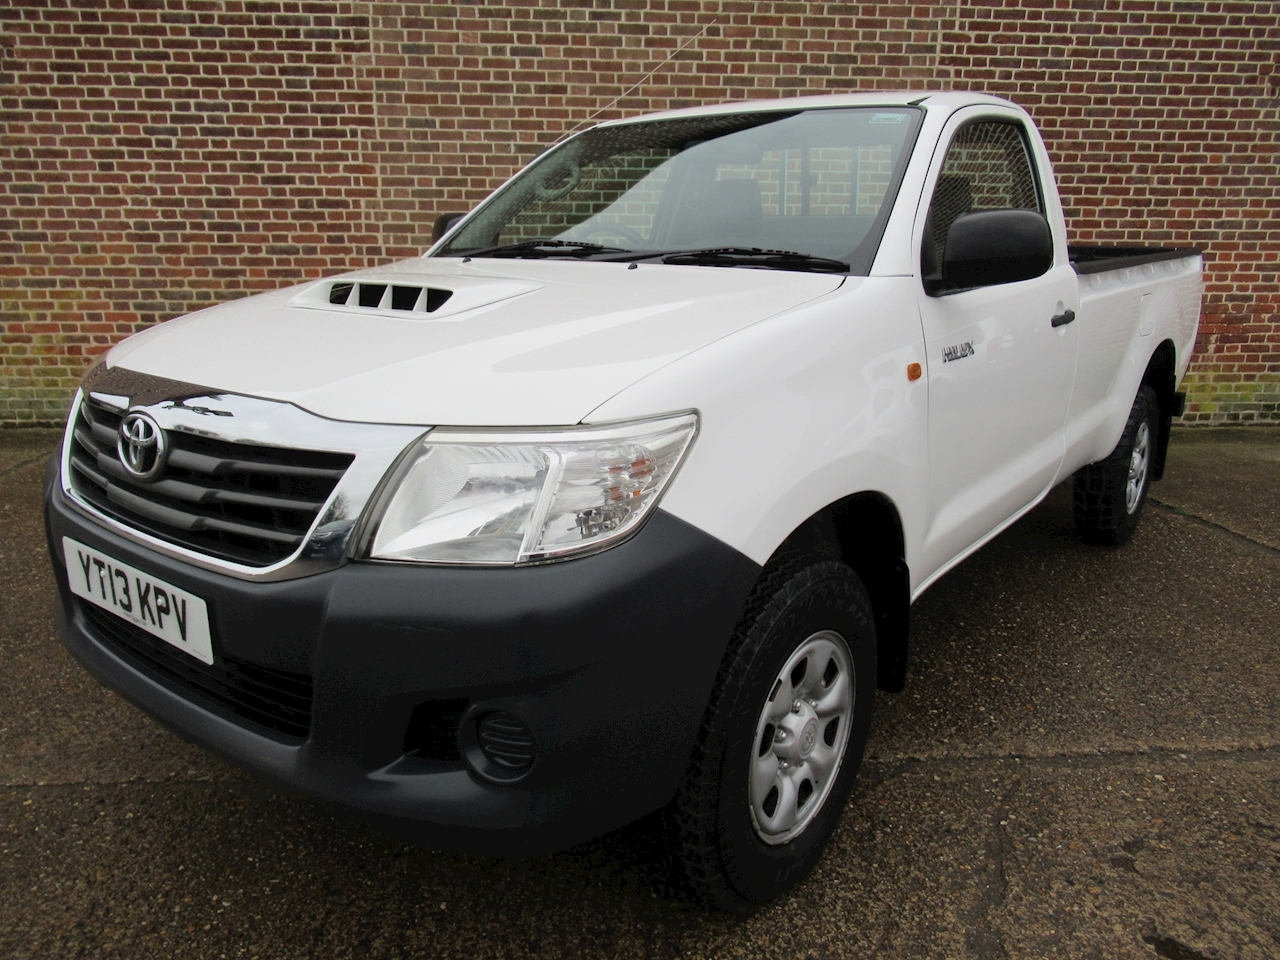 Toyota Hilux Hl2 4X4 D-4D S/C Light 4X4 Utility 2.5 Manual Diesel